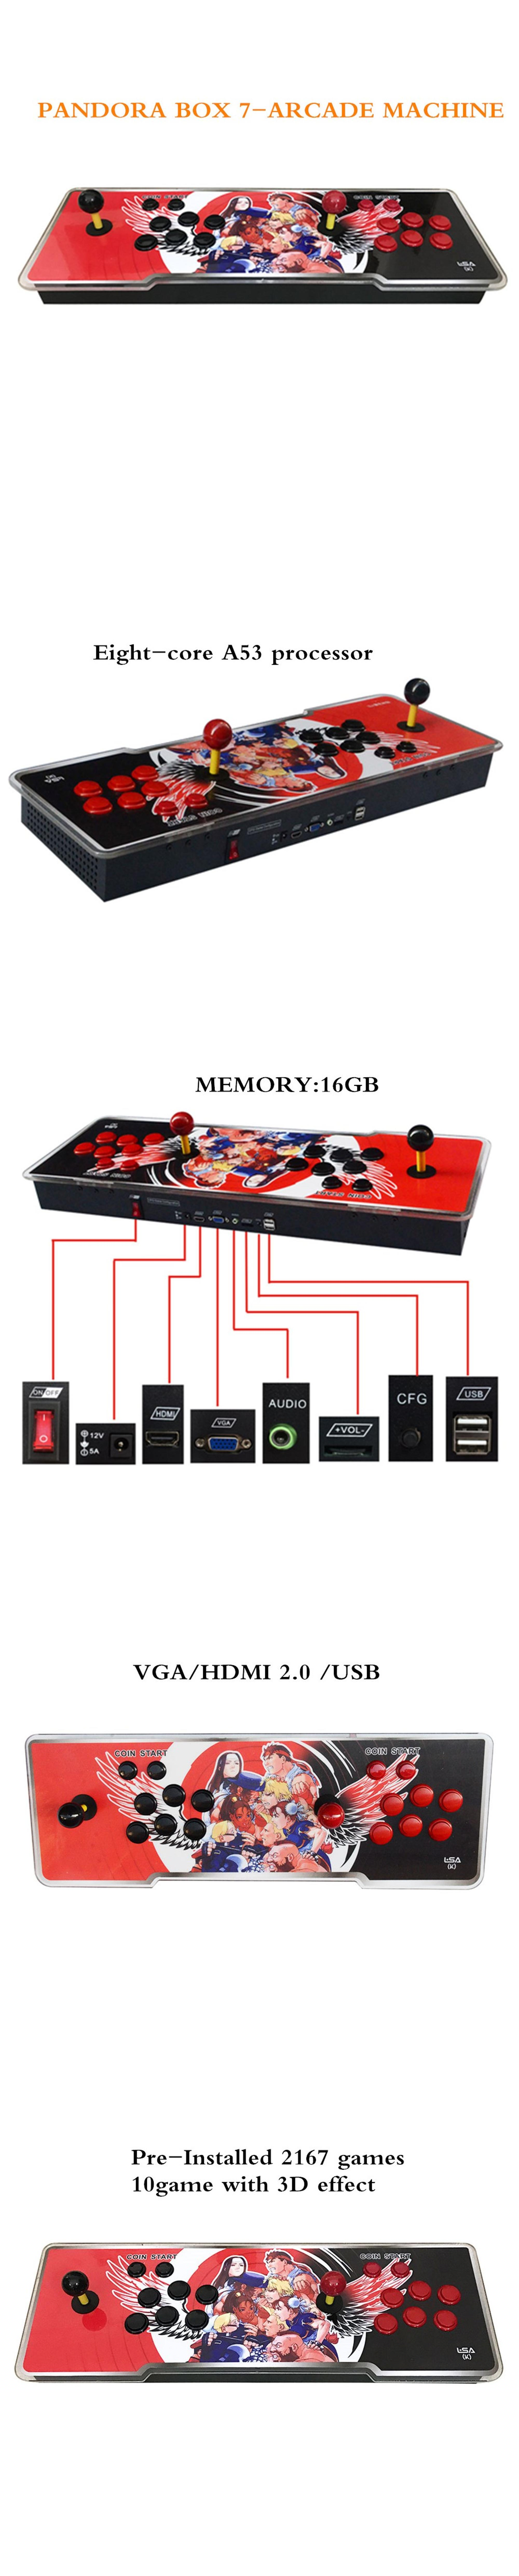 Factory Directly Sale 3D Pandora Box 7  Console With 2167 Built-in  Games Support CP1, CP2, NEOGEO, Arcade Games  For Sale.